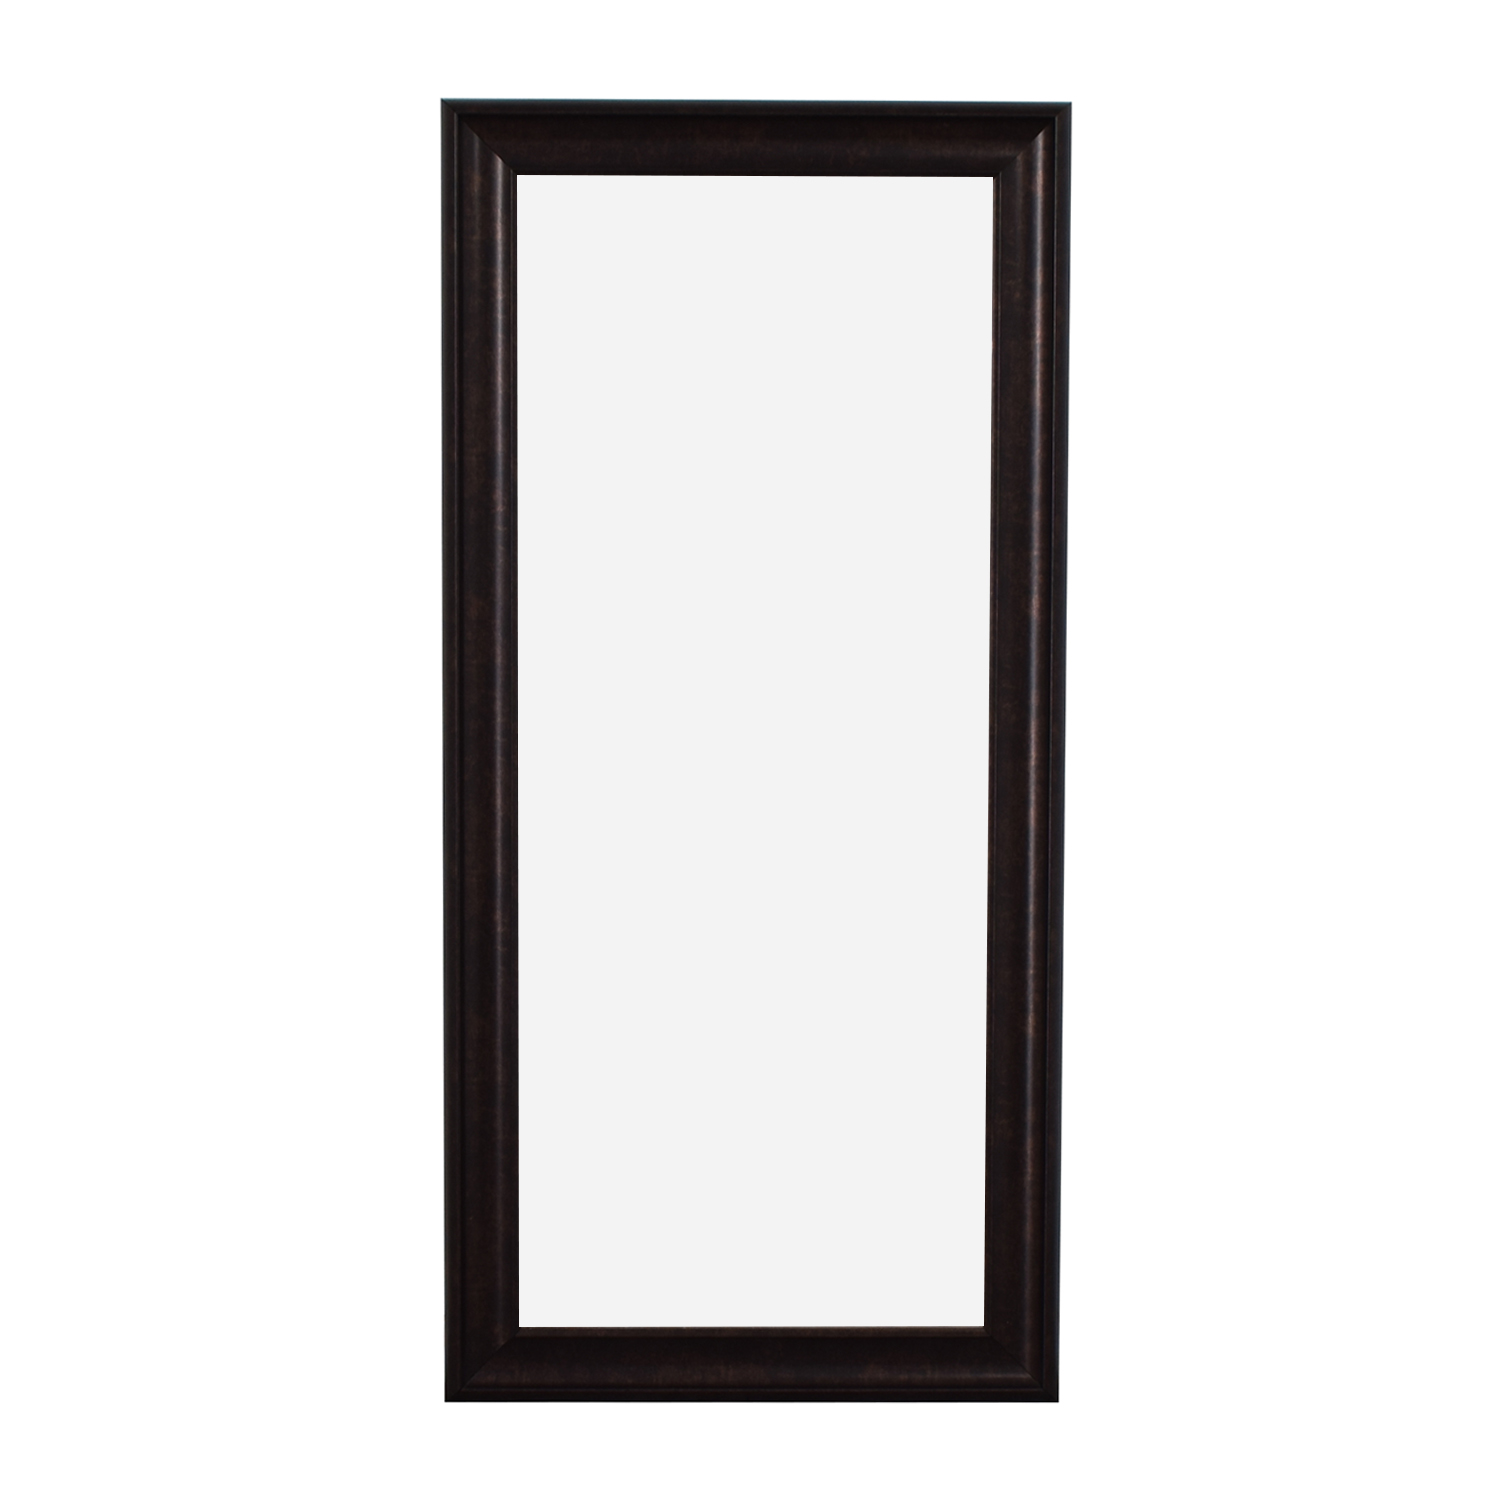 Sandberg Furniture Sandberg Furniture Oil Rubbed Bronze Leaner Floor Mirror nyc